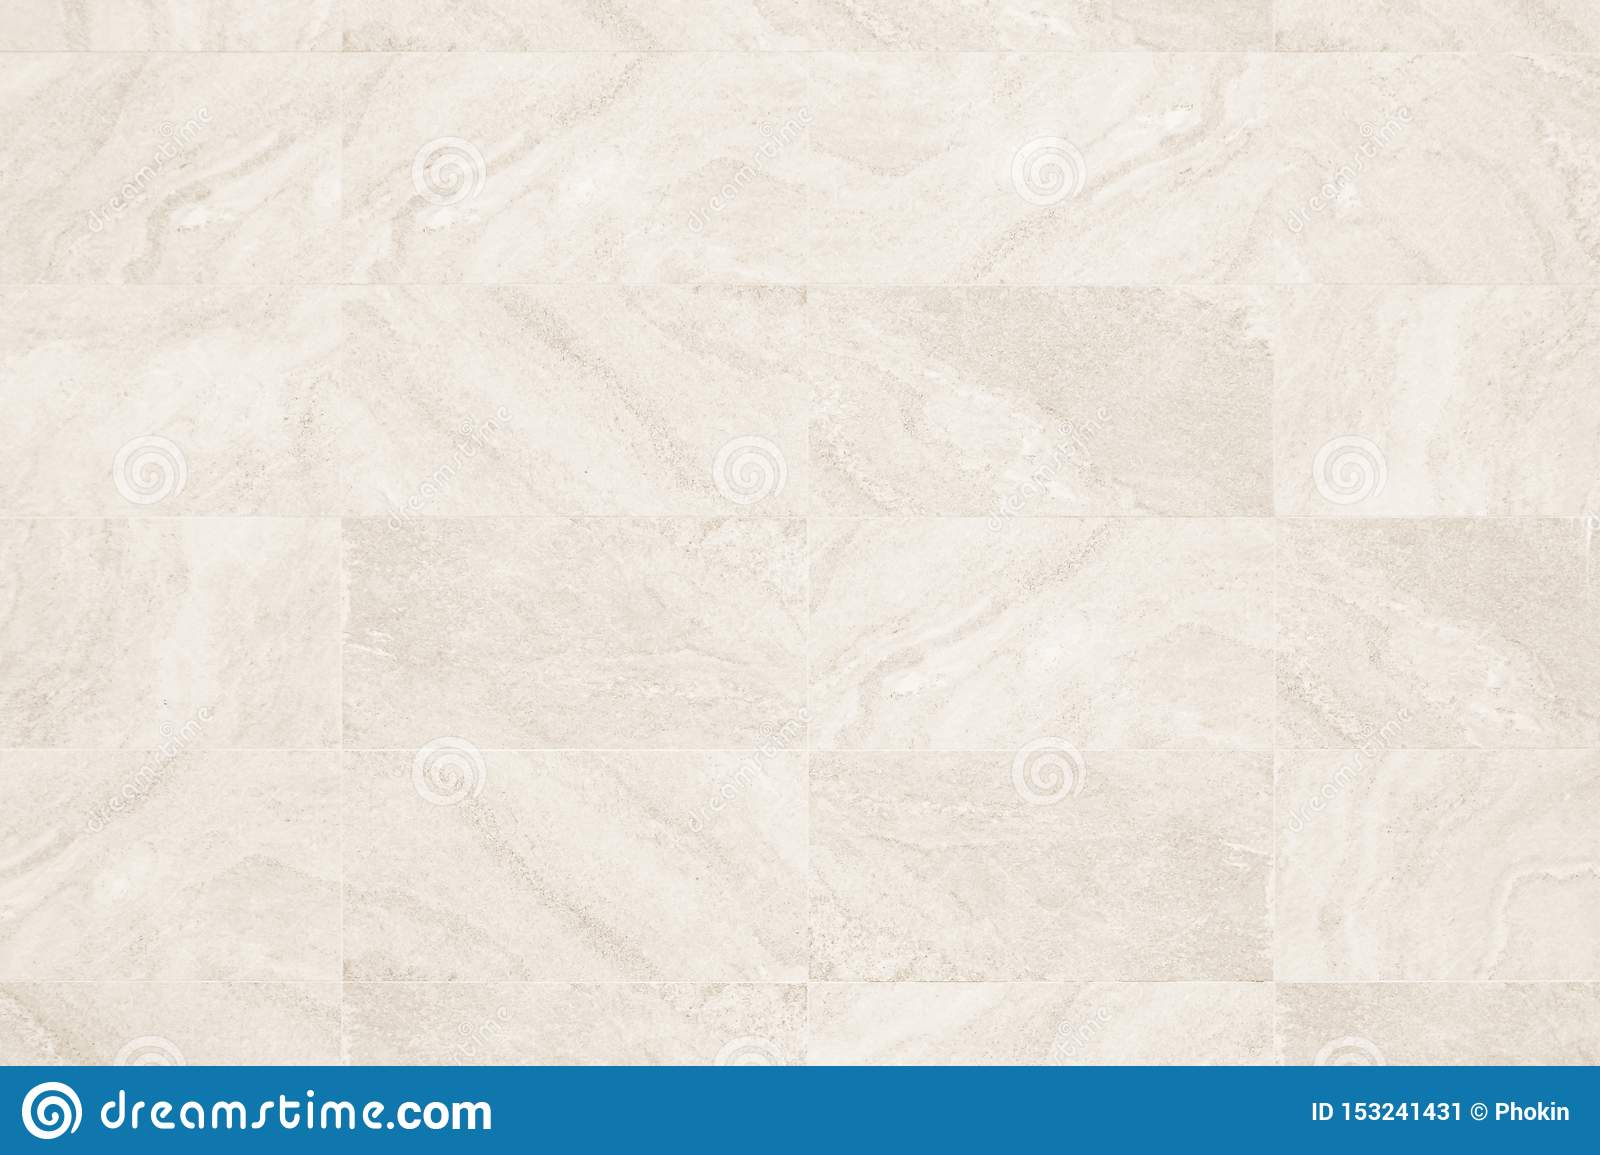 Cream Granite Texture And Background Or Slate Tile Ceramic Seamless Texture Square Light Beige Marble Tiles Seamless Floor Stock Image Image Of Carpet Concret 153241431